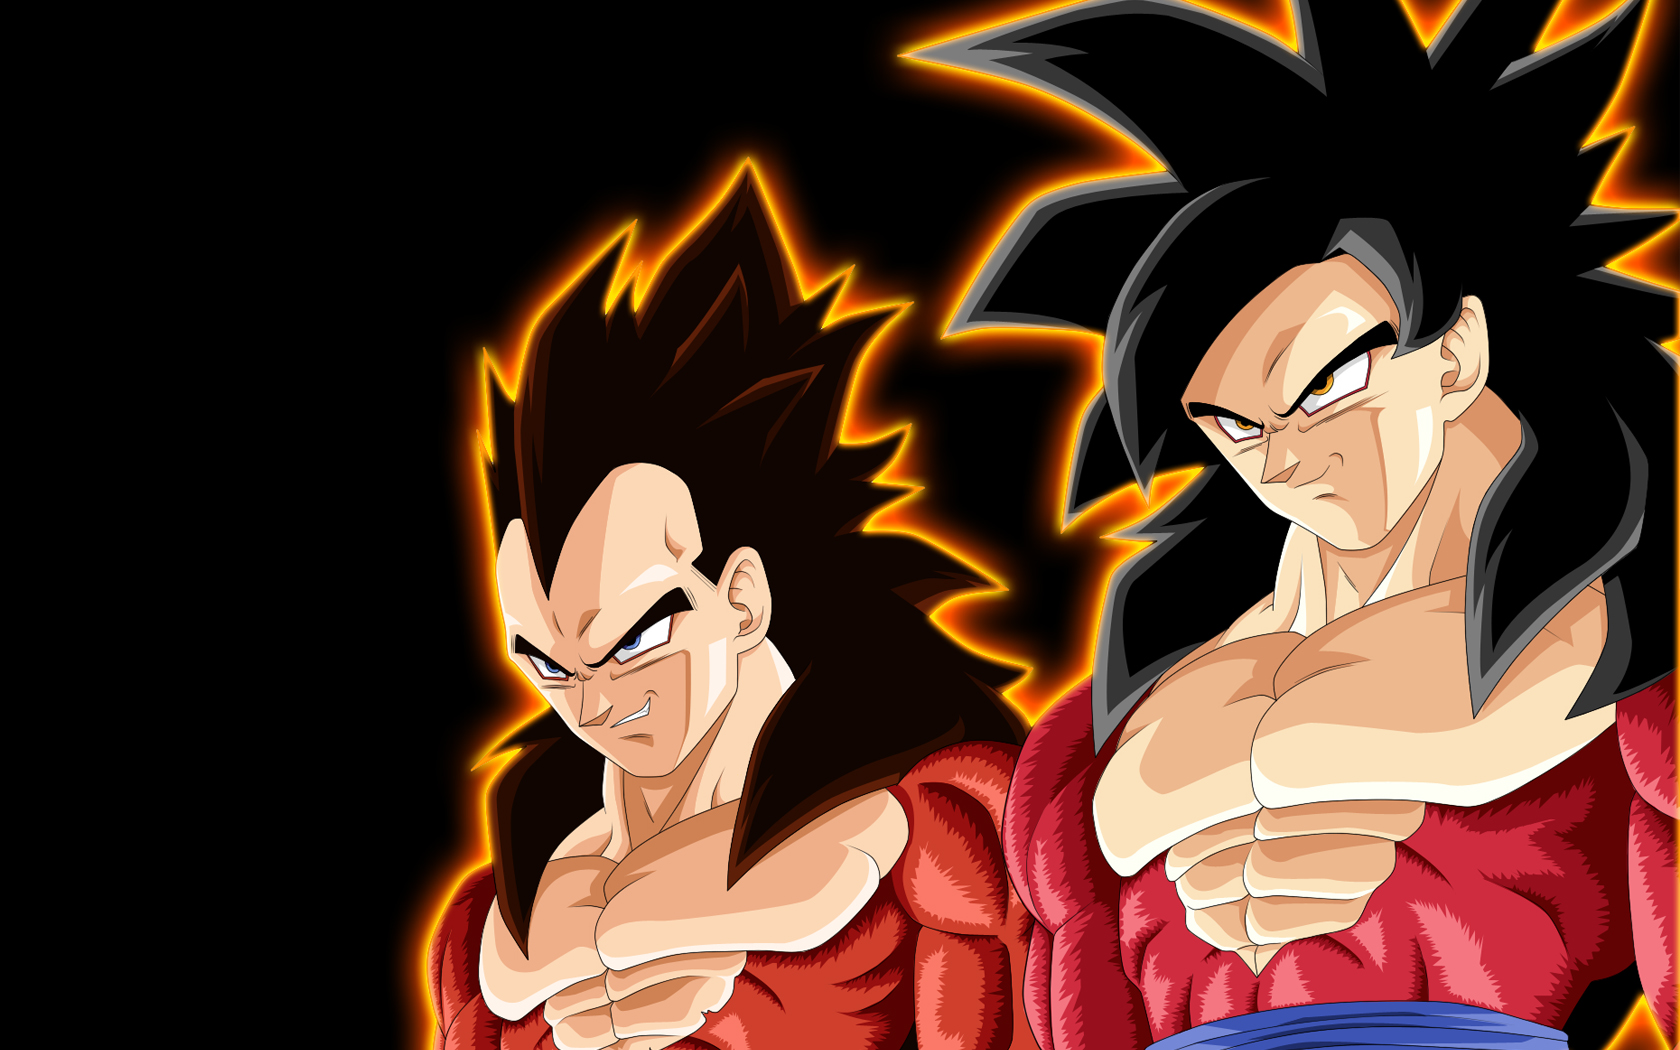 super saiyan 4 goku et vegeta Wallpaper   ForWallpapercom 1680x1050